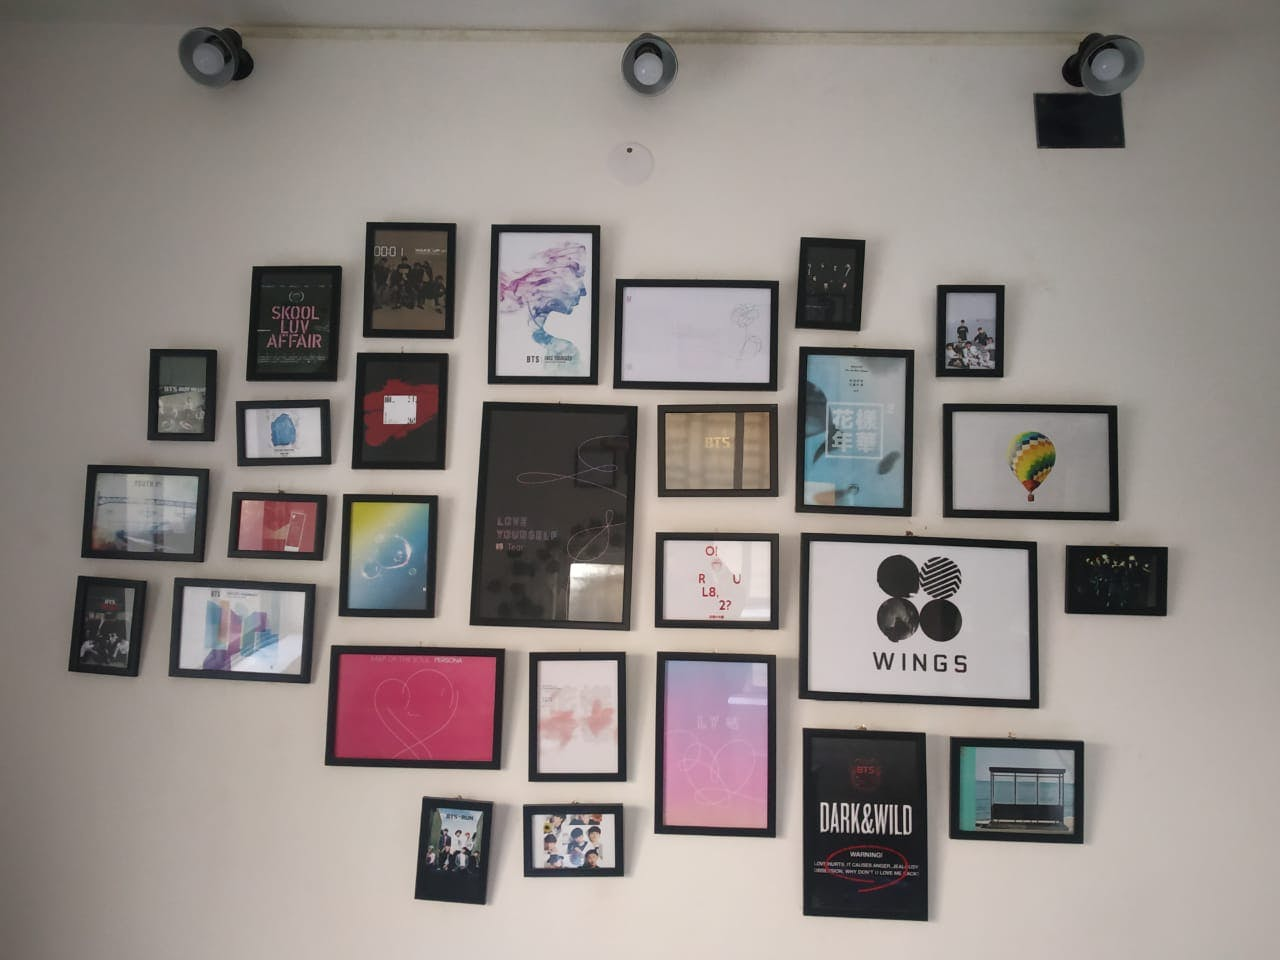 Wall,Collection,Visual arts,Picture frame,Room,Art,Event,Square,Display board,Exhibition